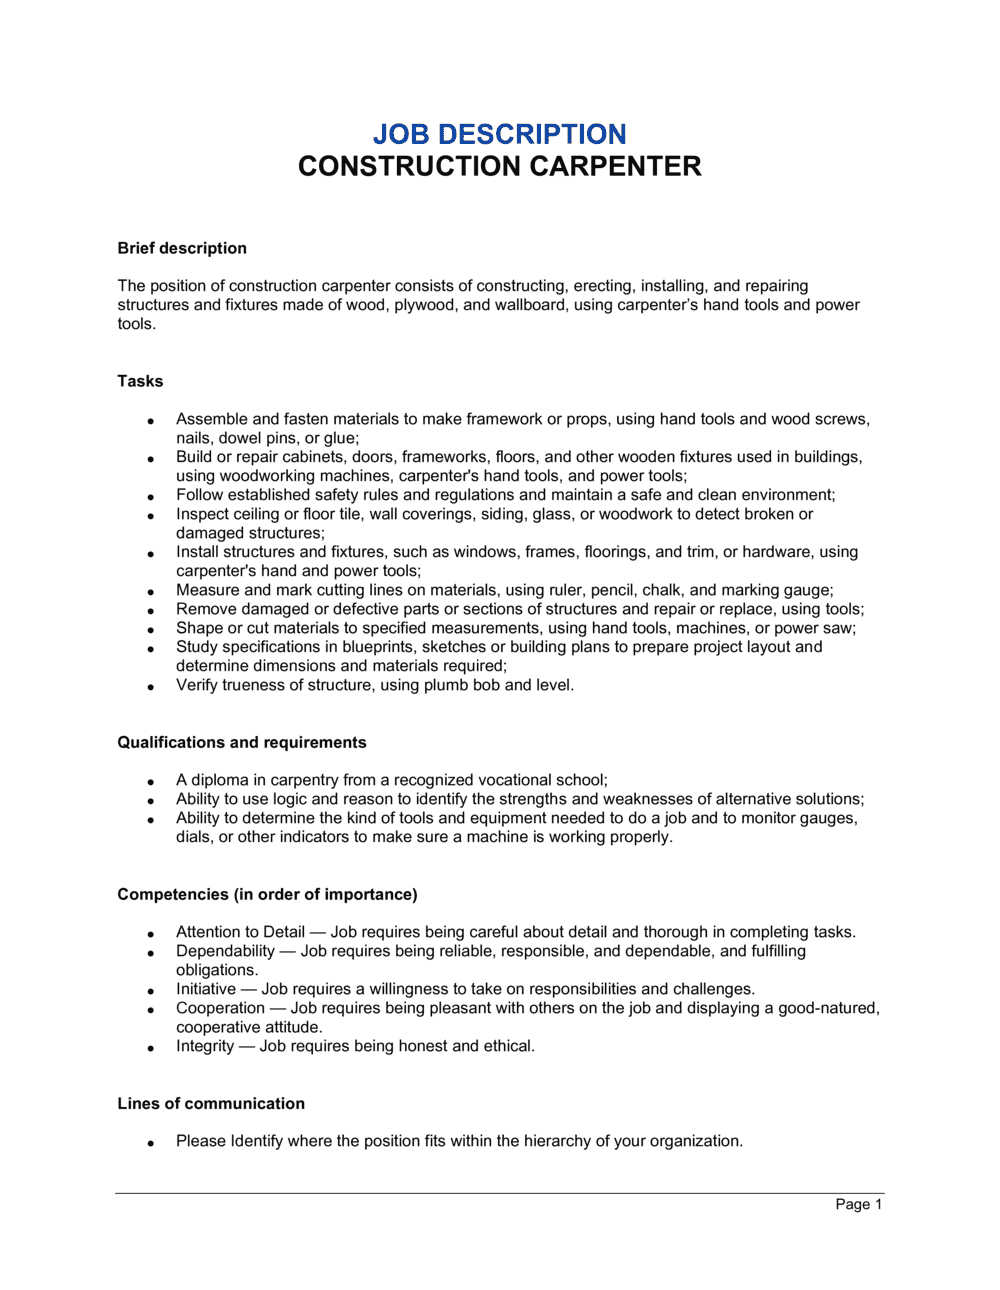 Business-in-a-Box's Construction Carpenter Job Description Template